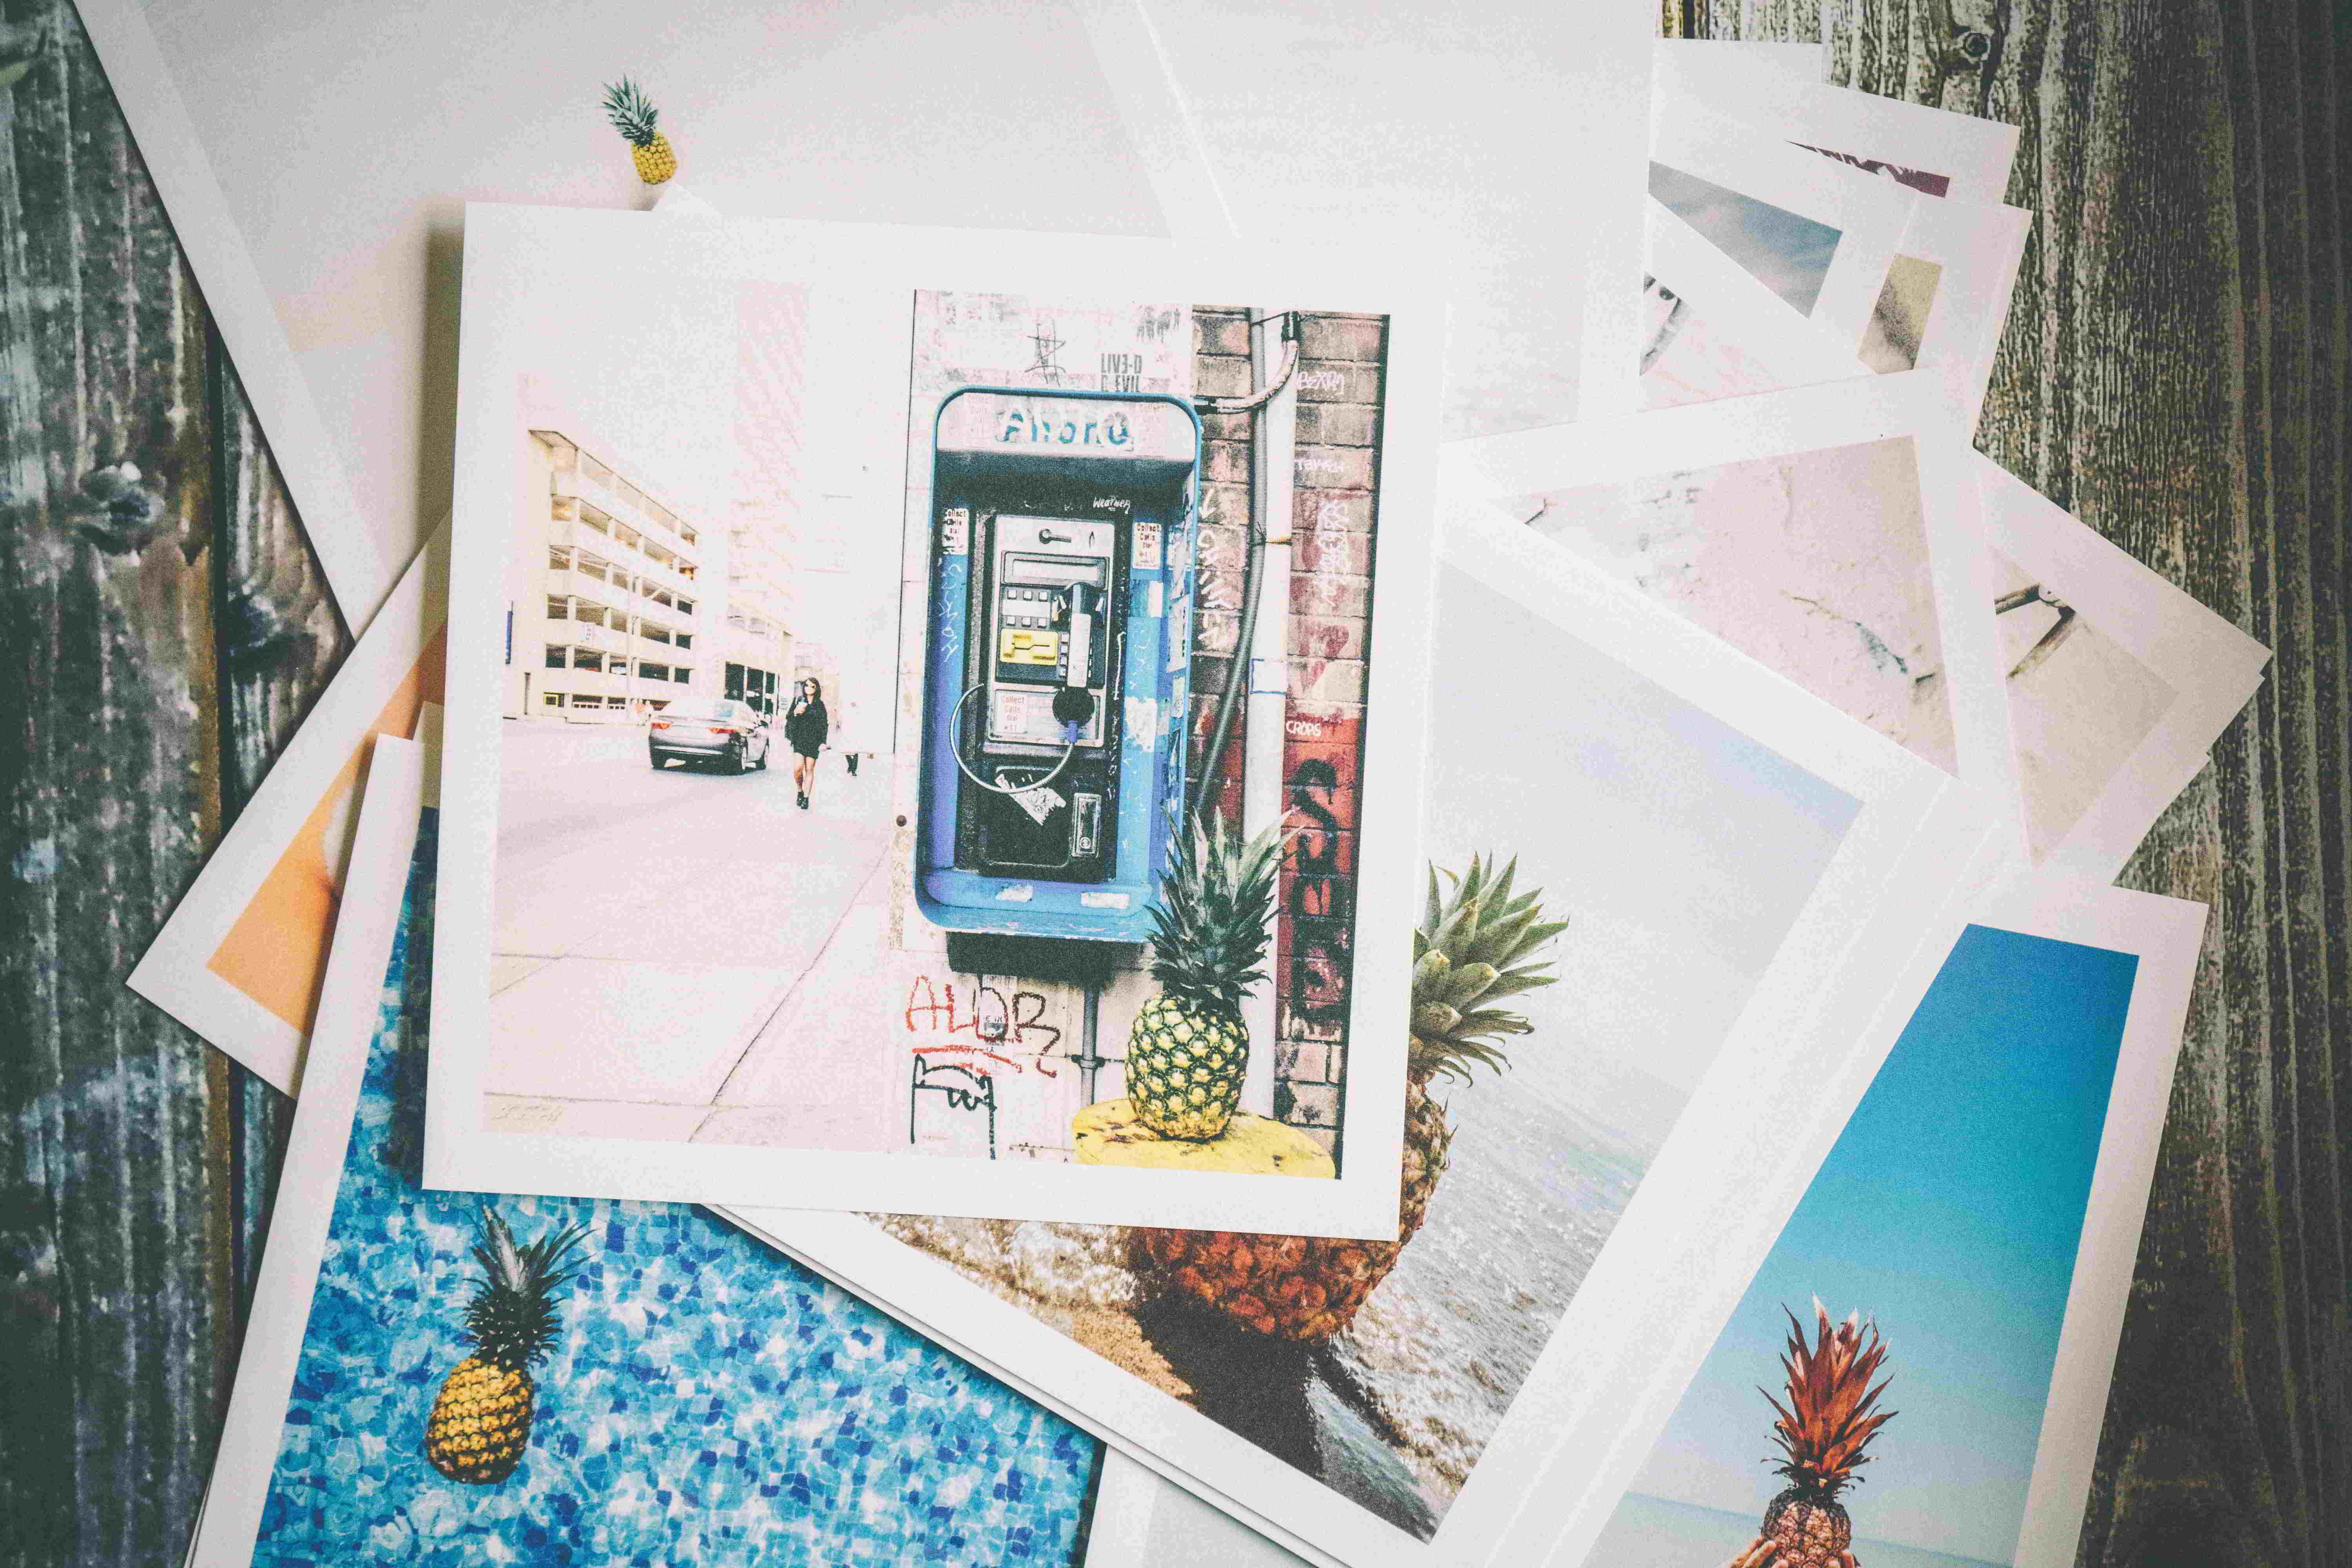 Case Study – Increasing Non-Customer Conversion Rates by 8x for a Photo Paper Manufacturing Company